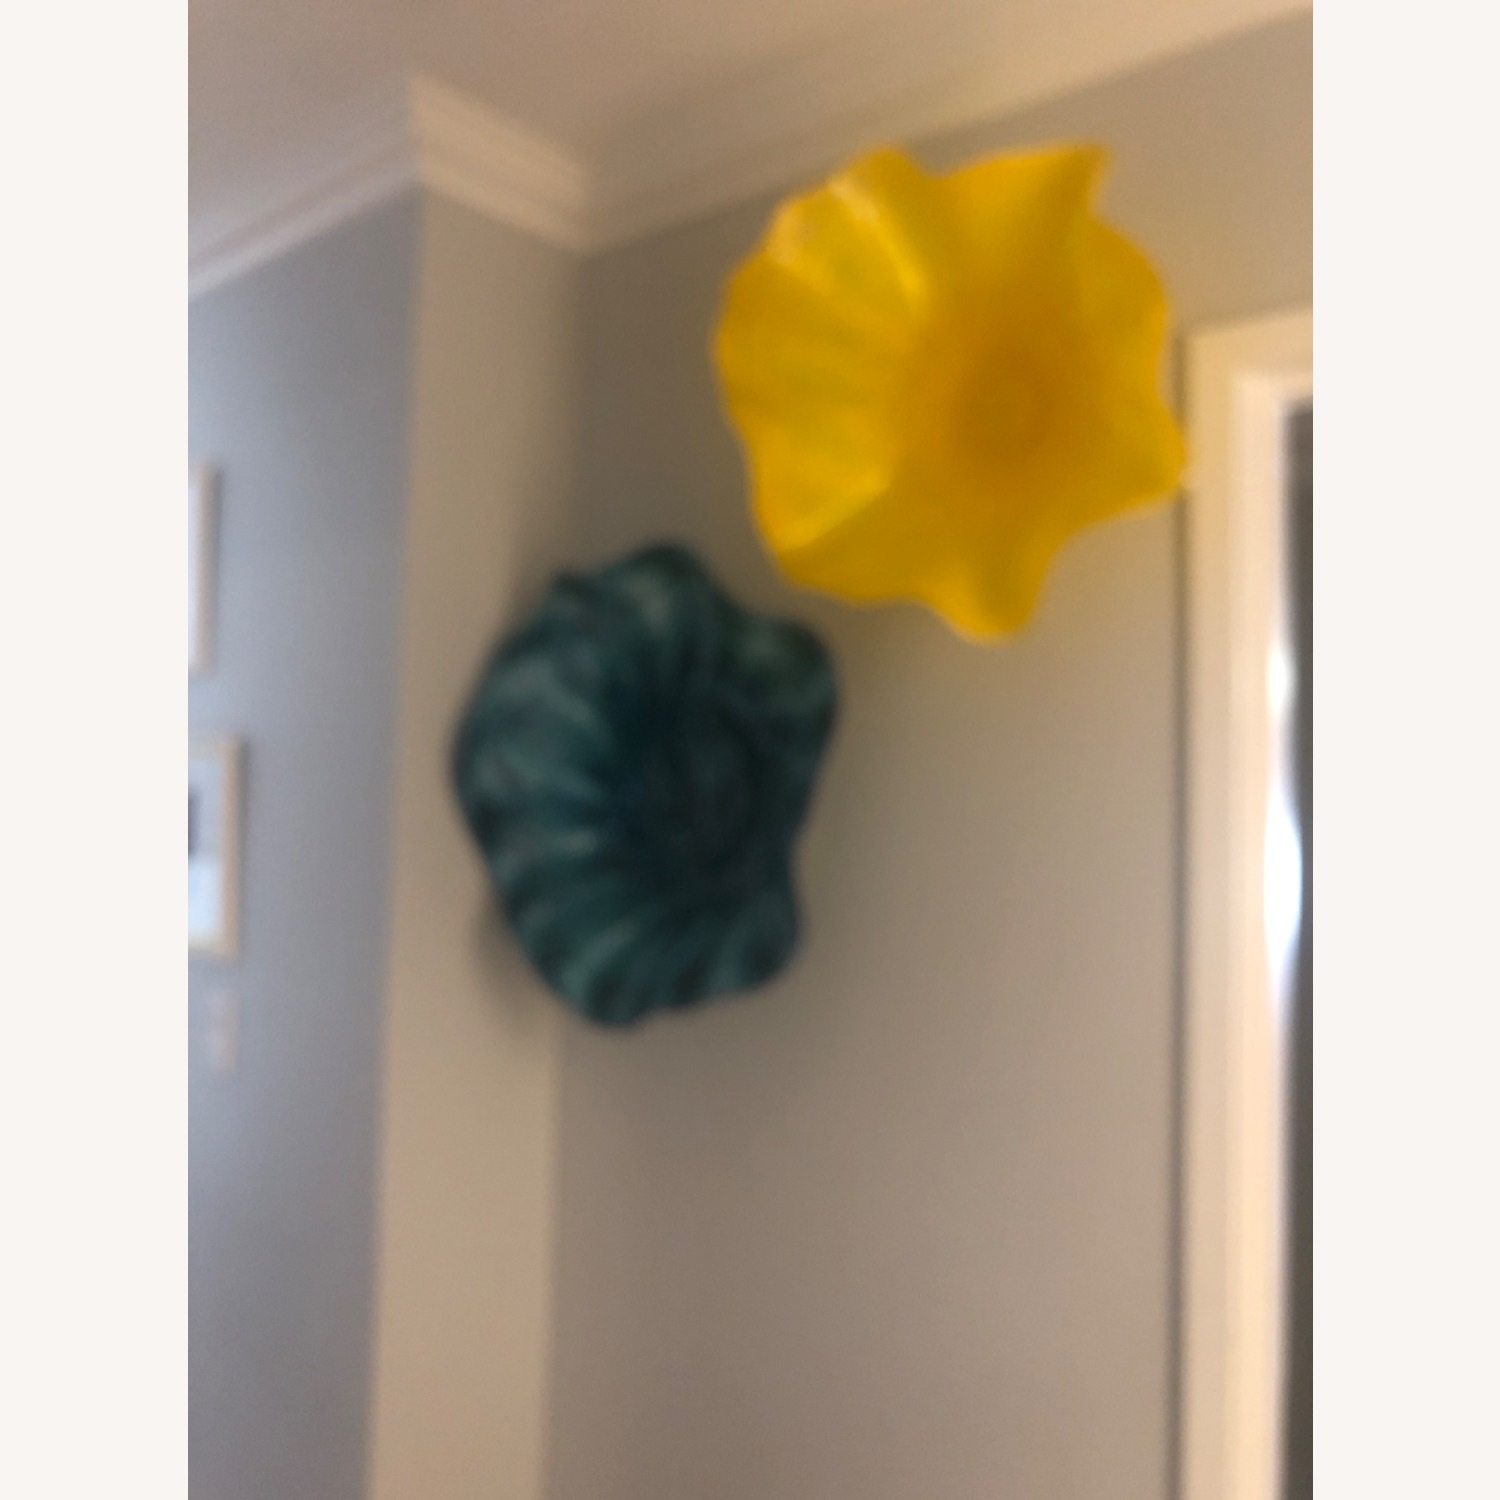 Blown Glass Wall Art Yellow and Turquoise - image-1